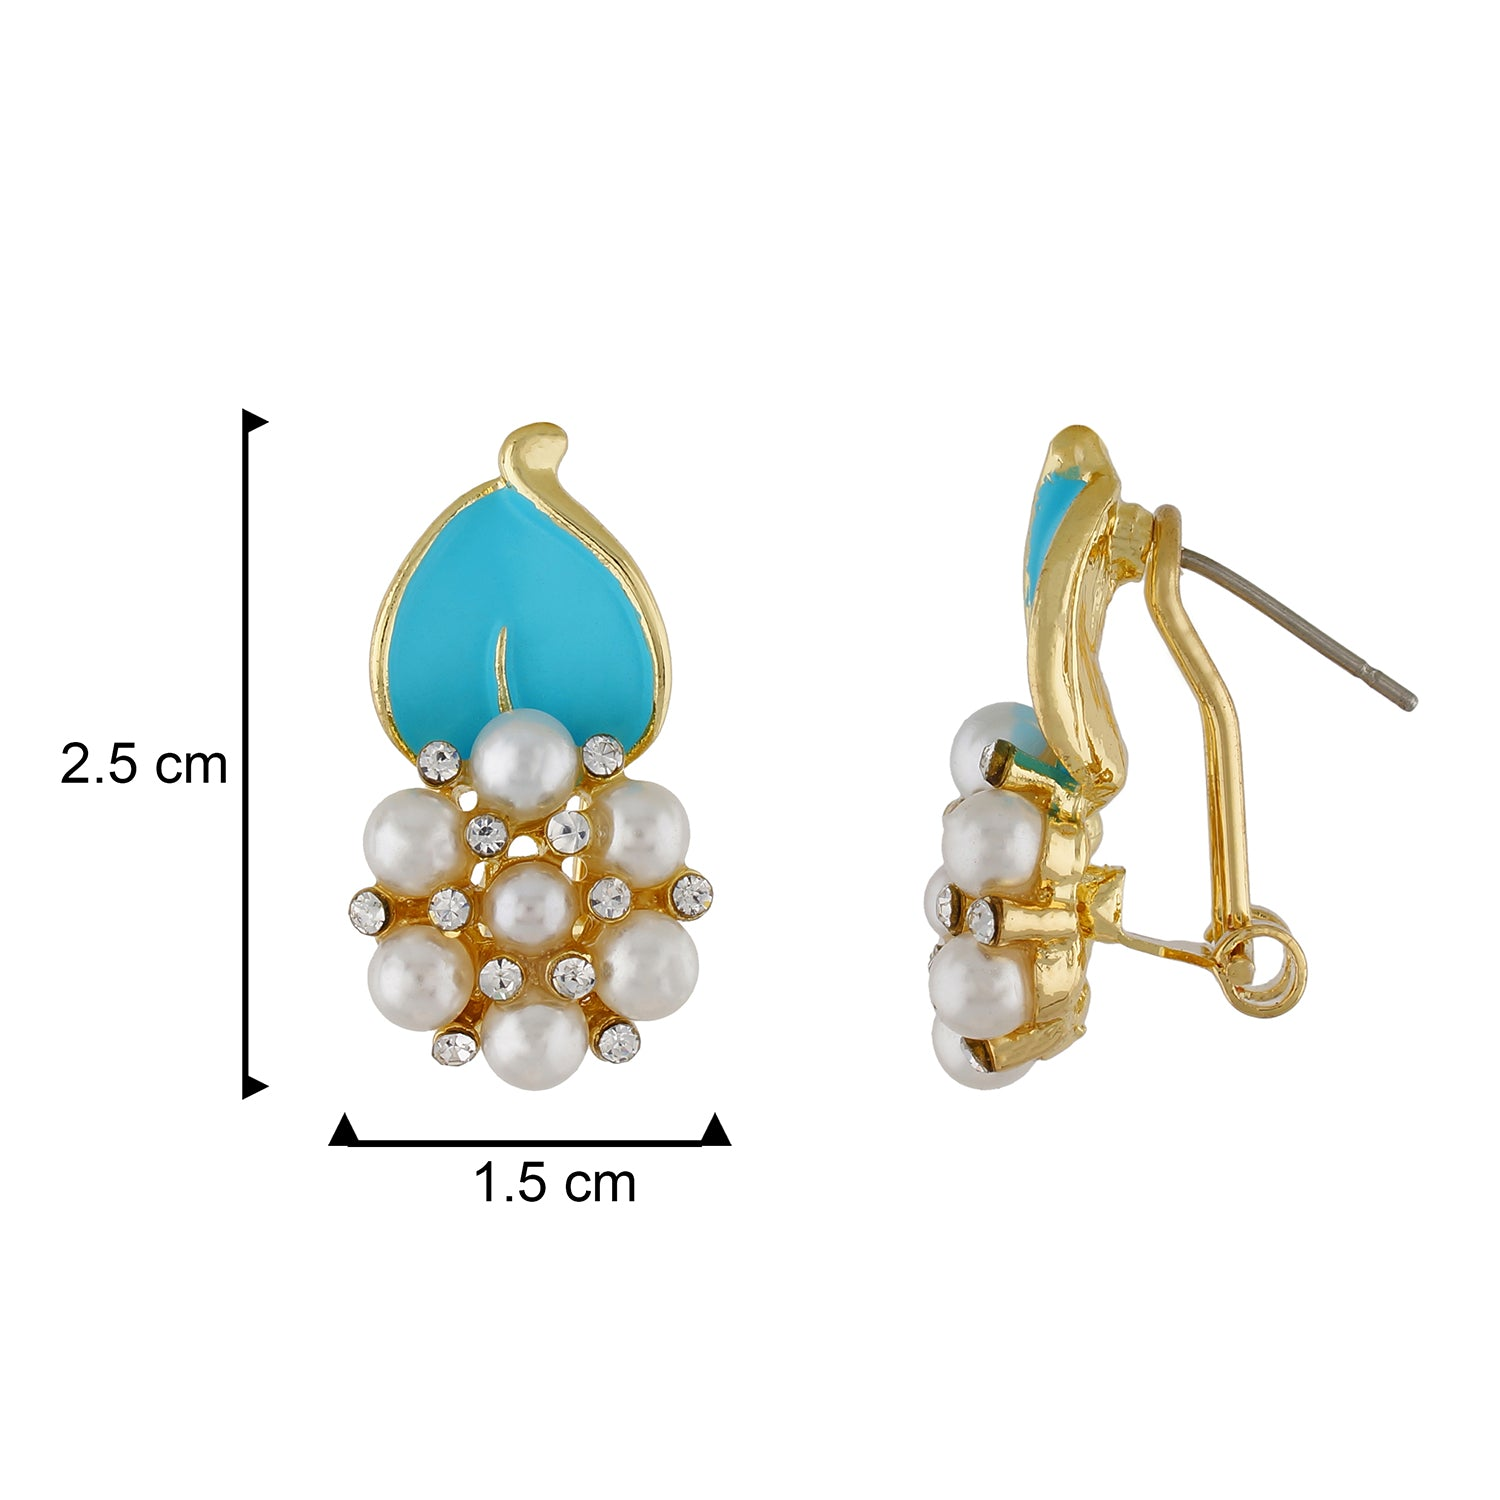 Stylish Light Blue and Gold Colour Flower with Leaf Design Earring for Girls and Women